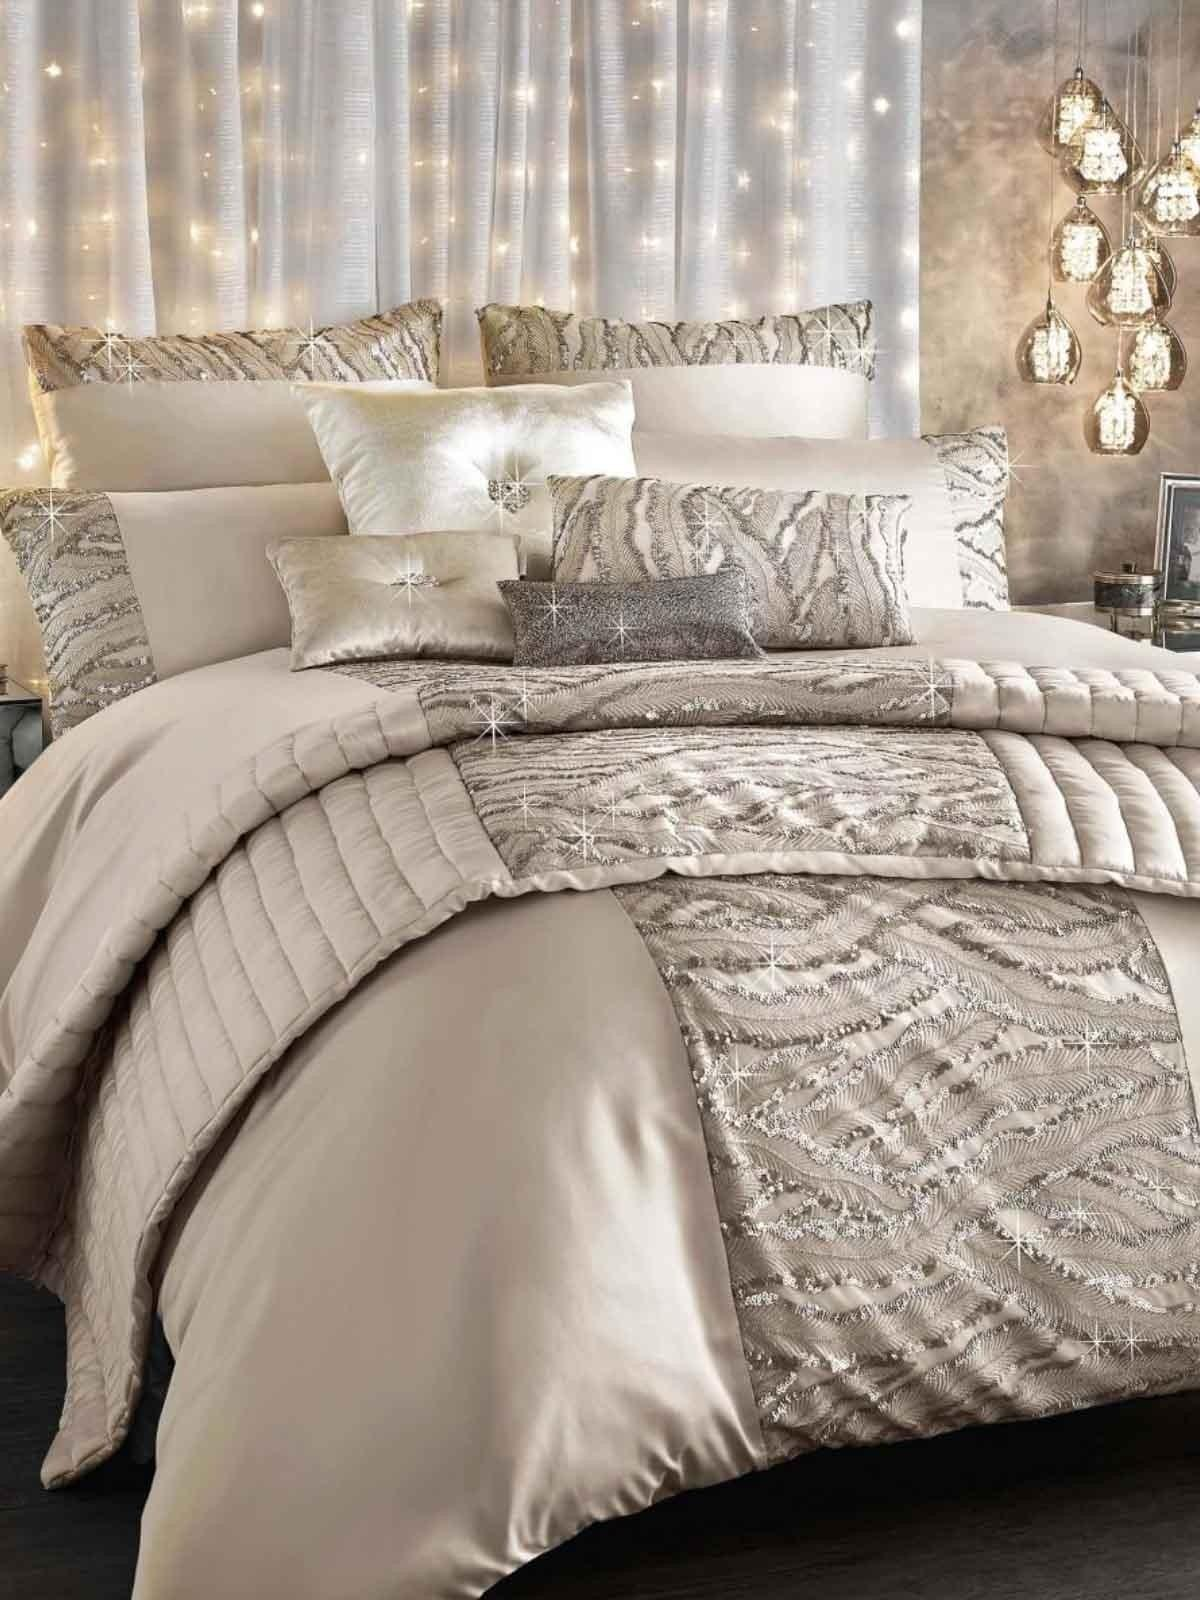 Kylie Minogue Celeste Bedding Collection Shell Ponden Home